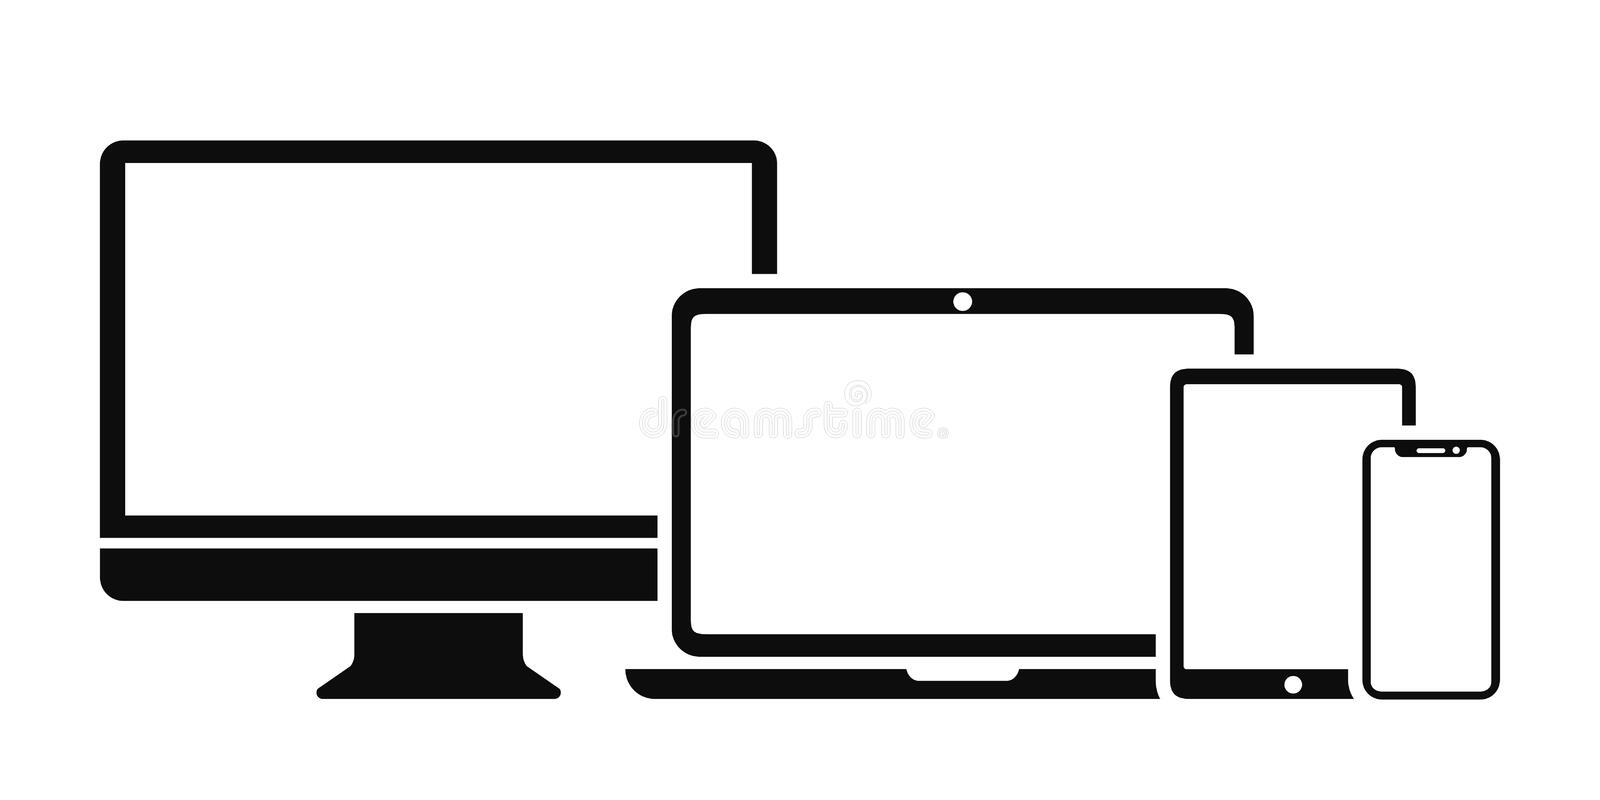 Set technology devices icon: computer, laptop, tablet and smartphone screen icon for web development apps and websites. Stock vector stock illustration